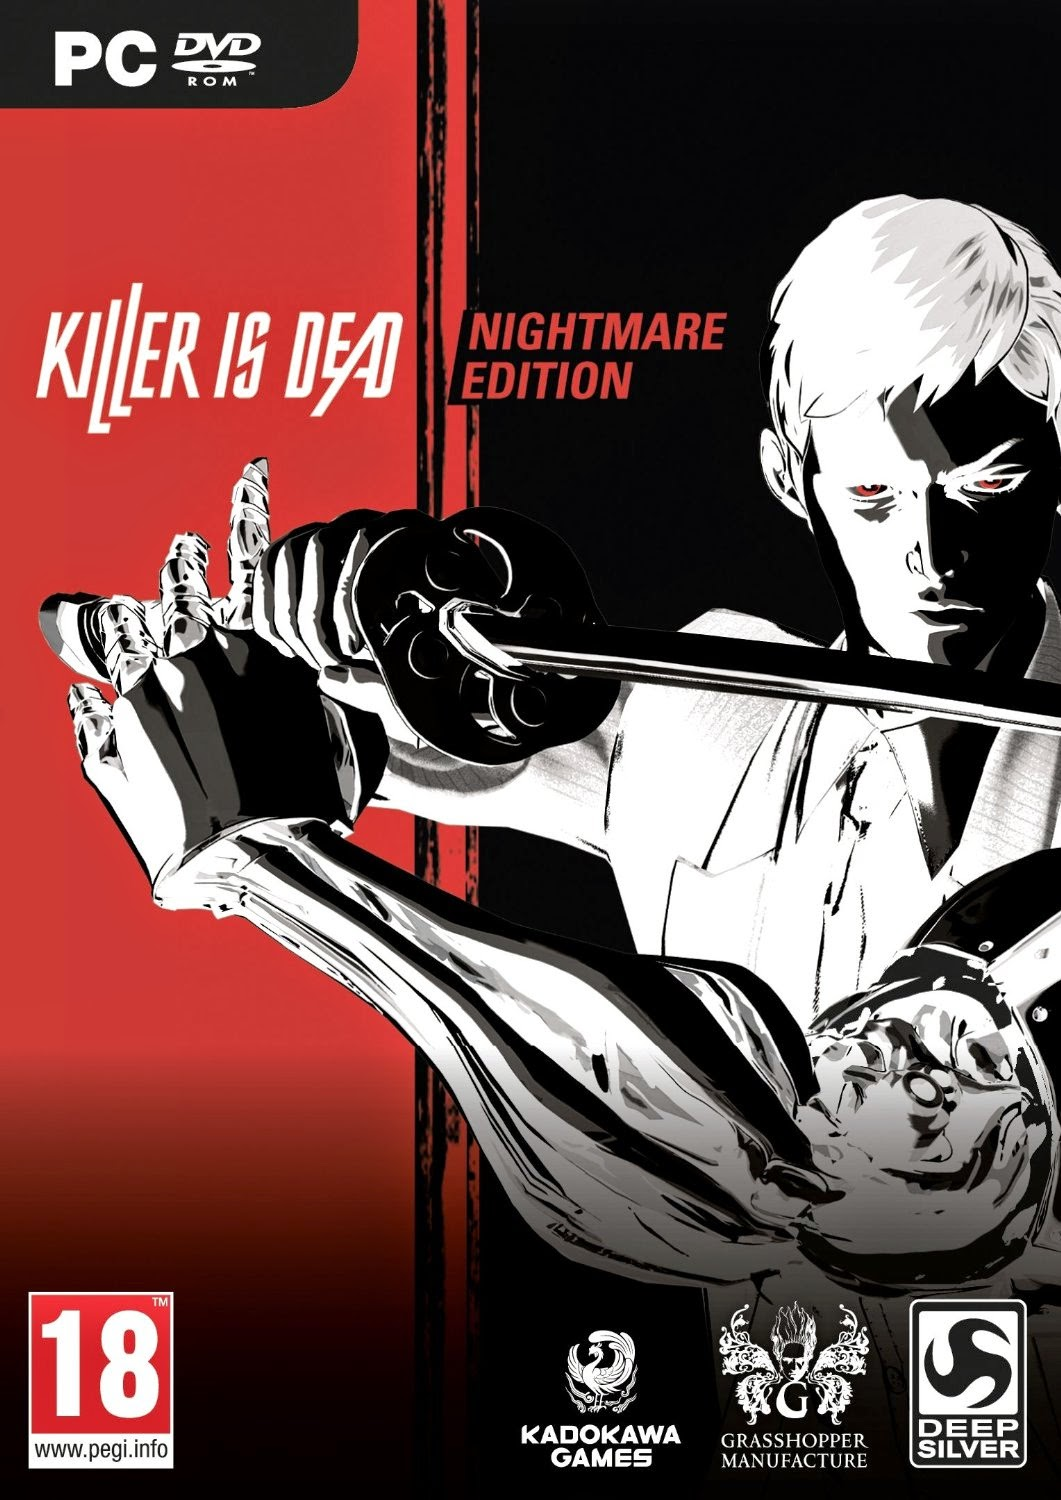 Killer is Dead Nightmare Edition PC release